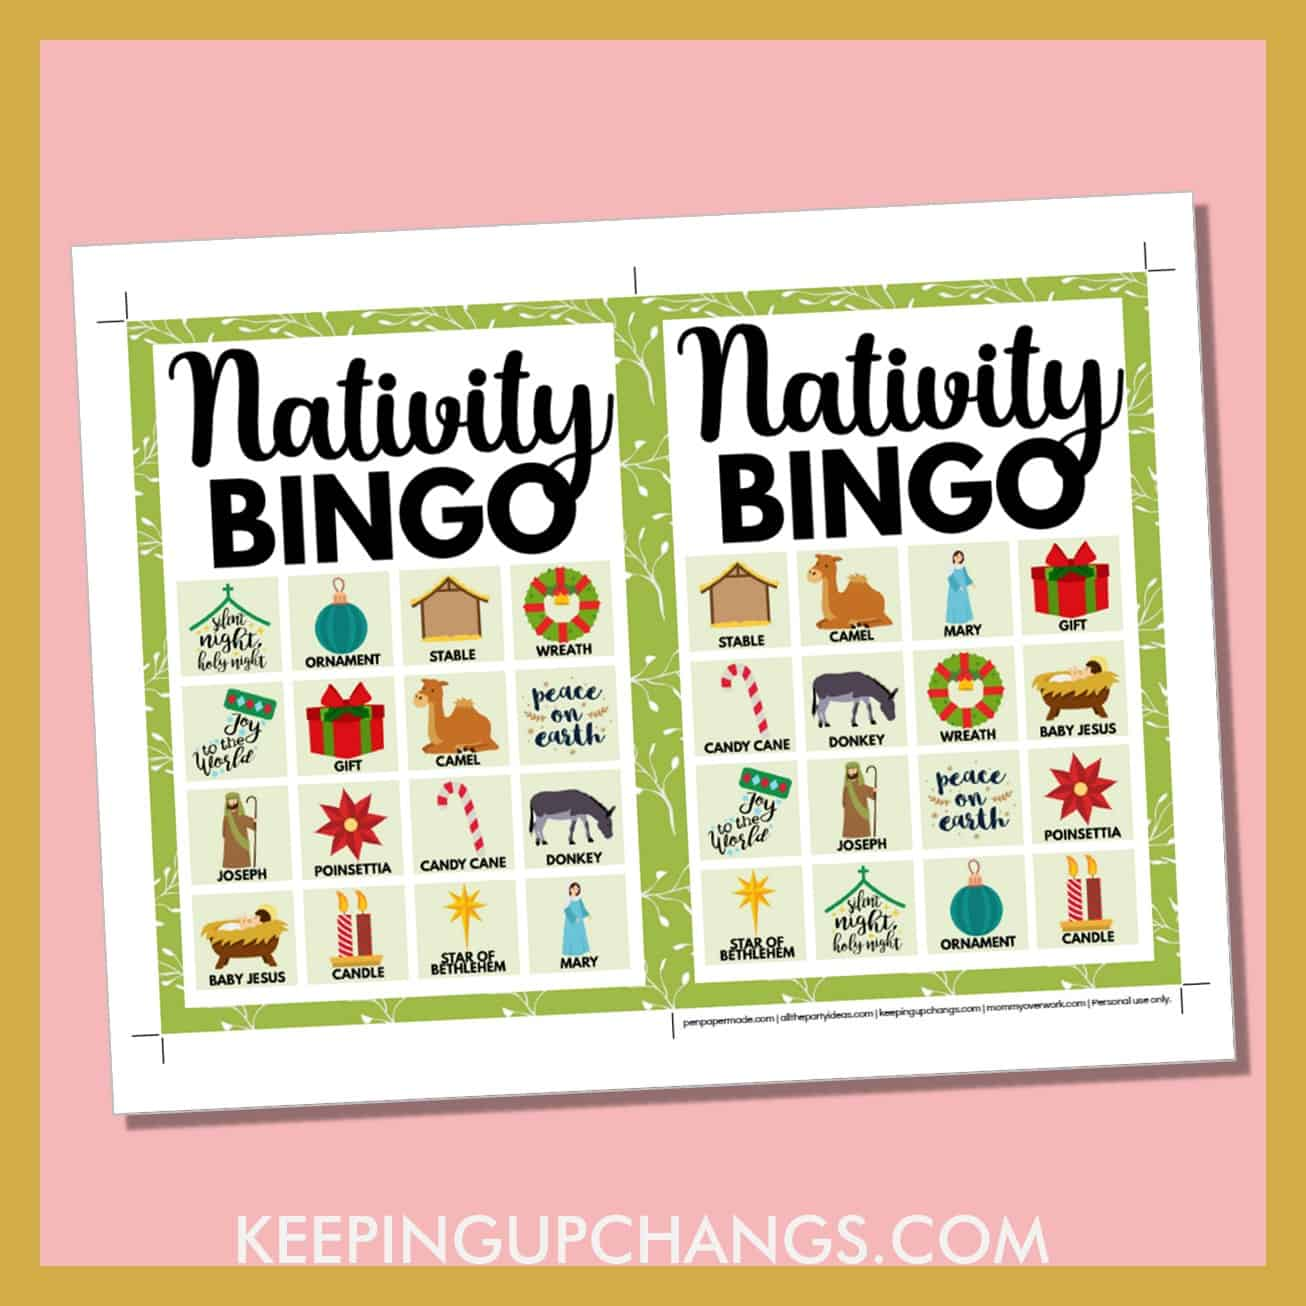 free bible nativity christmas bingo card 4x4 5x7 game boards with images and text words..